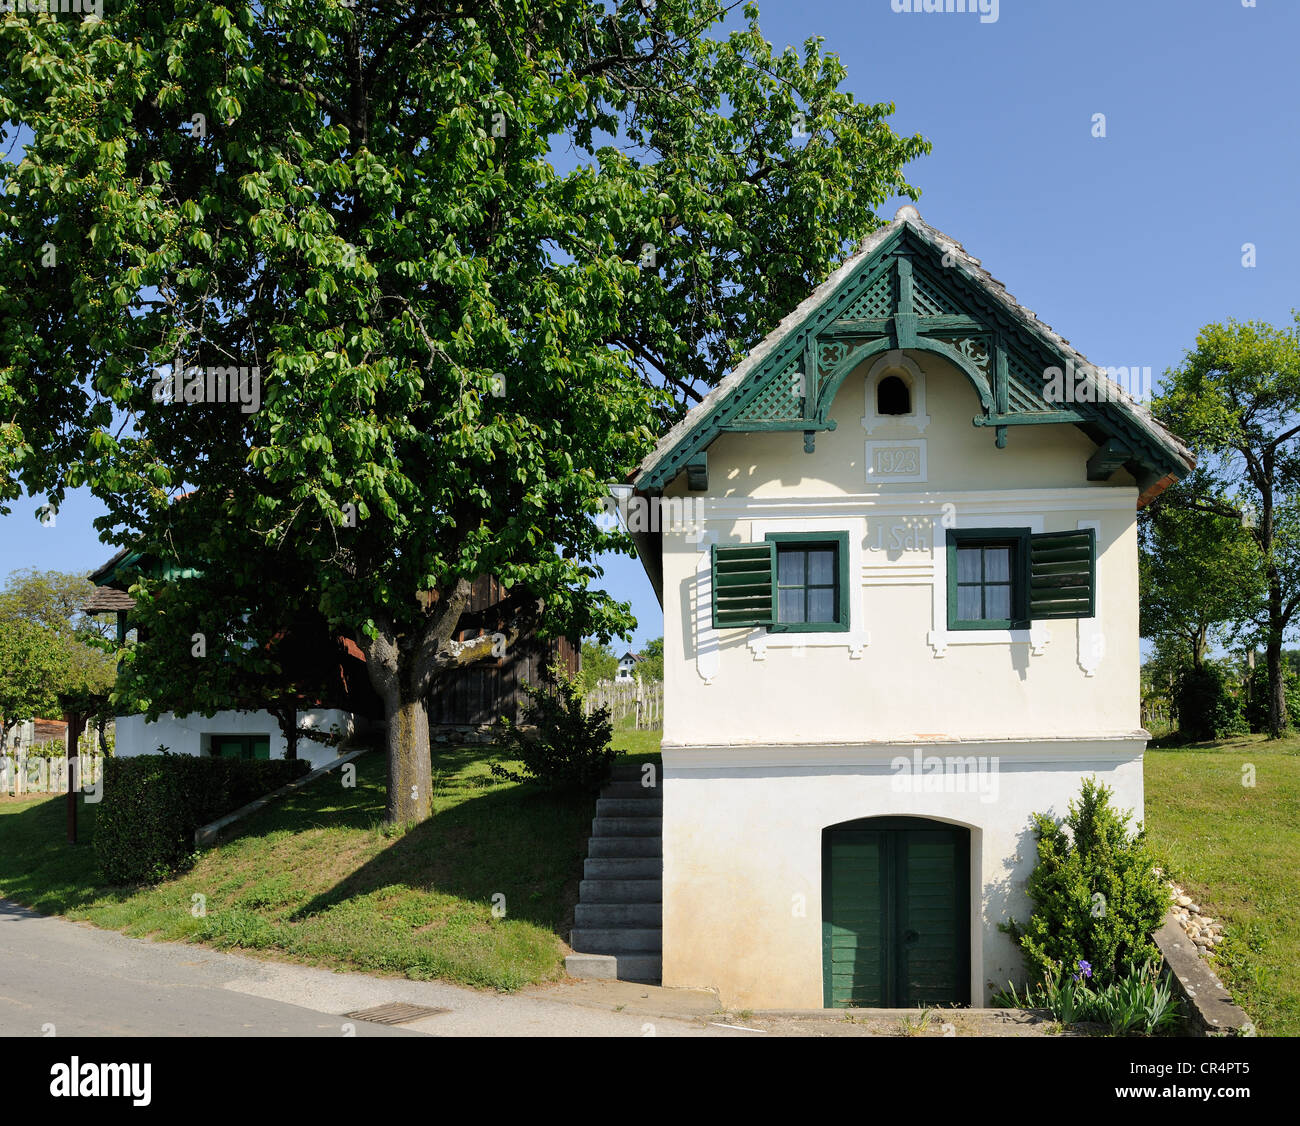 Wine Groweru0027s House On Csaterberg Mountain, Kohfidisch, Burgenland,  Austria, Europe   Stock